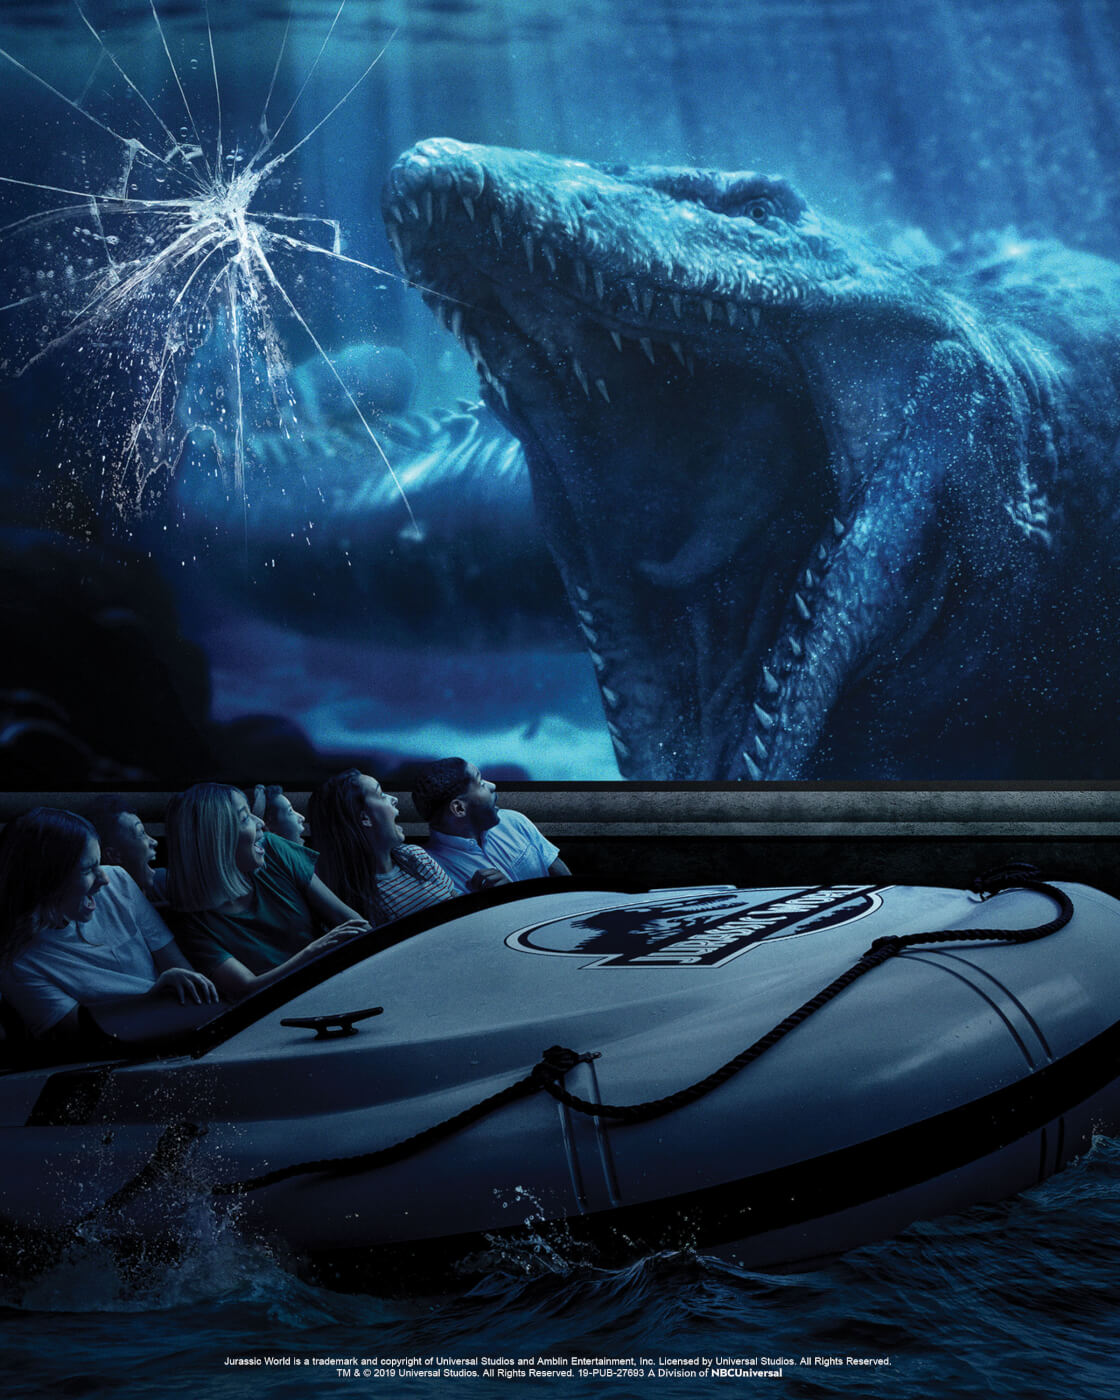 'Jurassic World the Ride' Officially Opens at Universal Studios Hollywood!